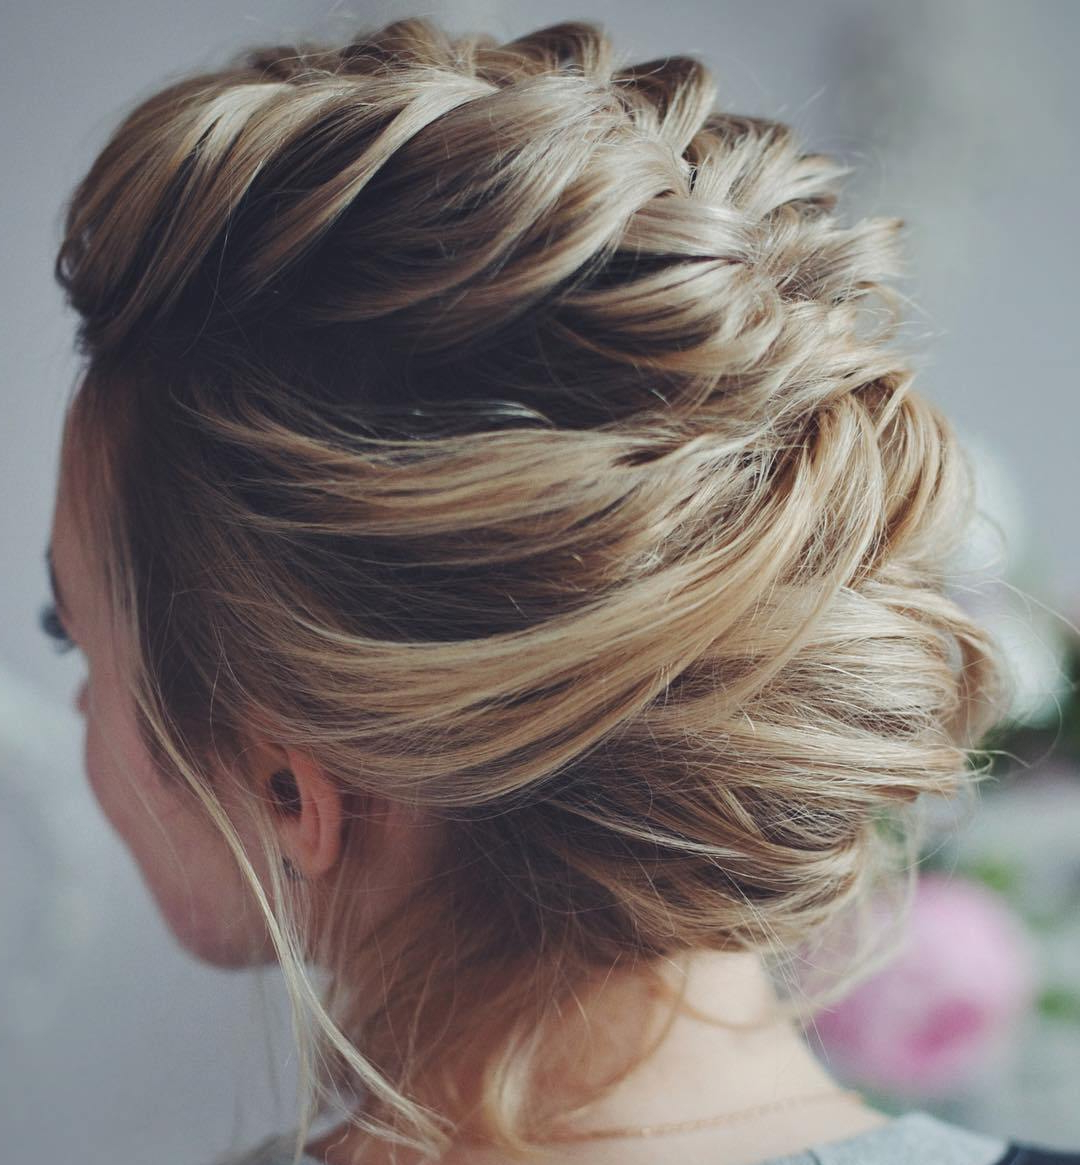 50 Hottest Prom Hairstyles For Short Hair Pertaining To Cute Short Hairstyles For Homecoming (View 5 of 25)